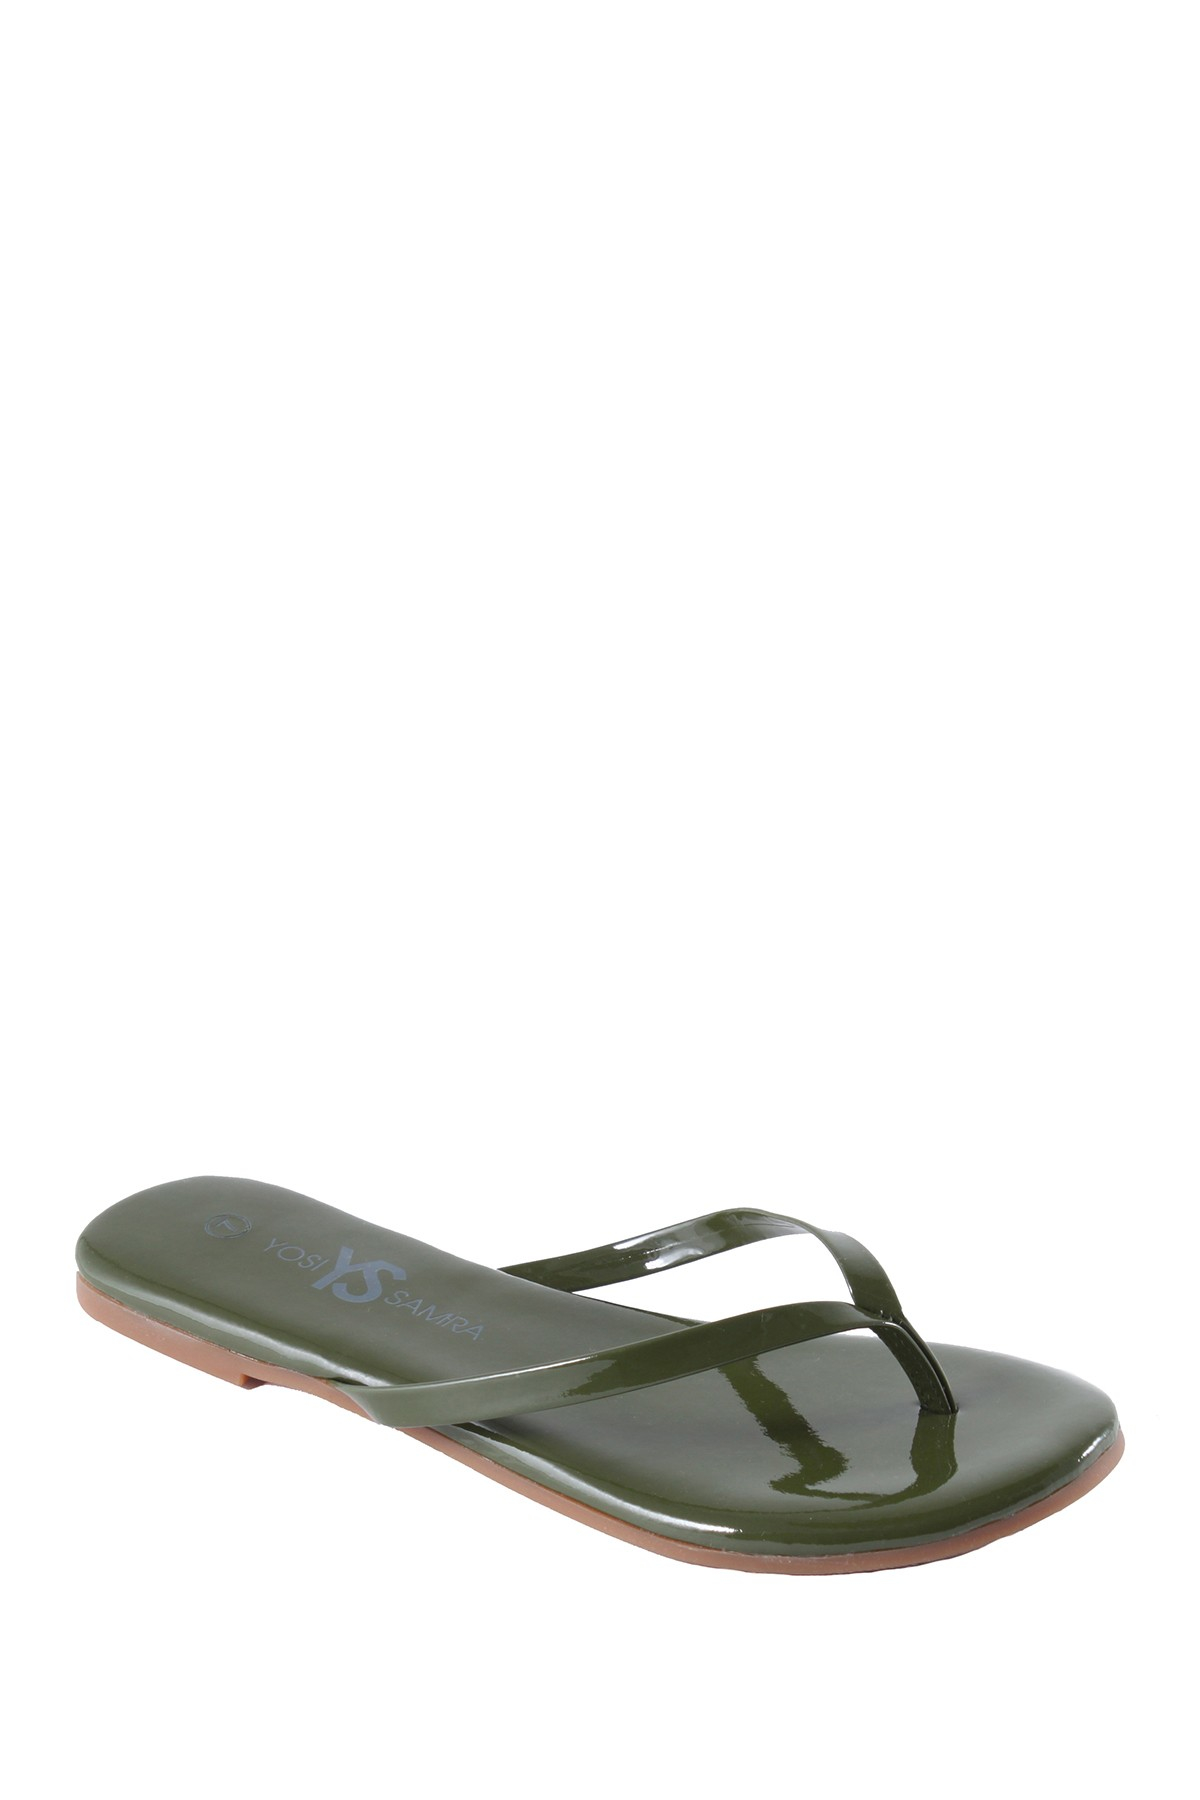 fa03877f5406e Lyst - Yosi Samra Patent Leather Flip-flop in Green